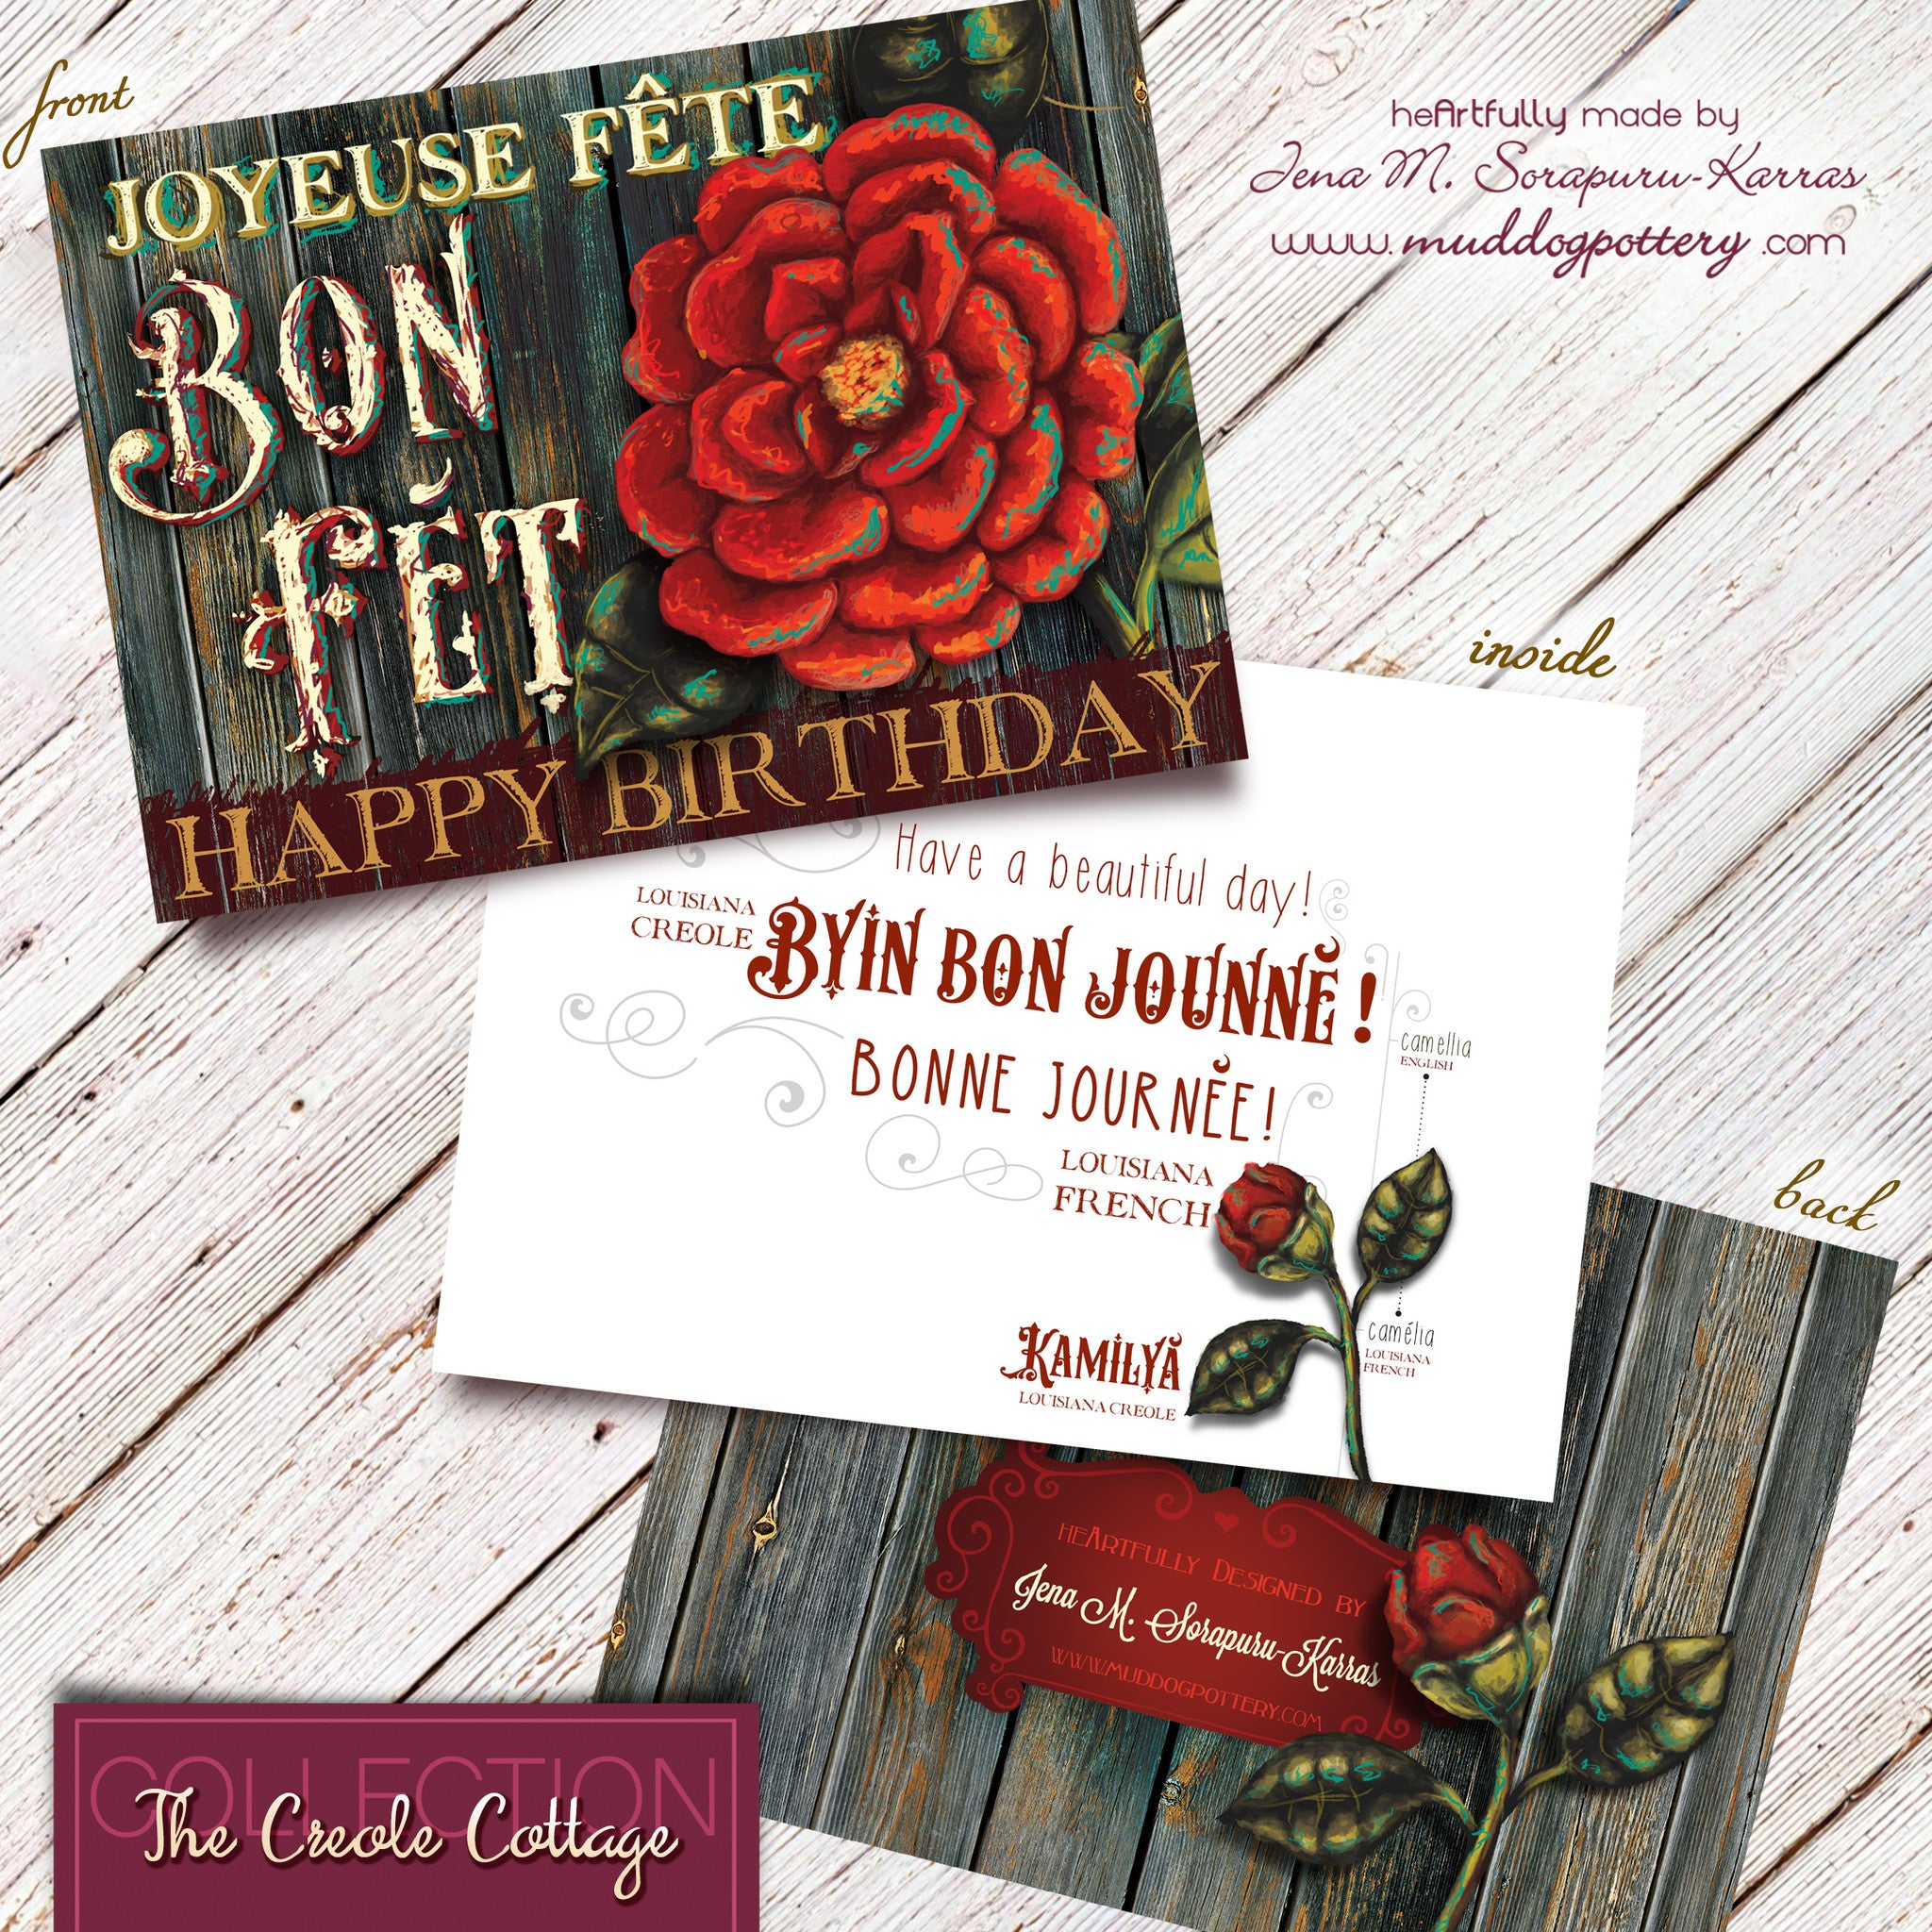 Louisiana Camellia Flower Birthday Card (The Creole Cottage Collection)